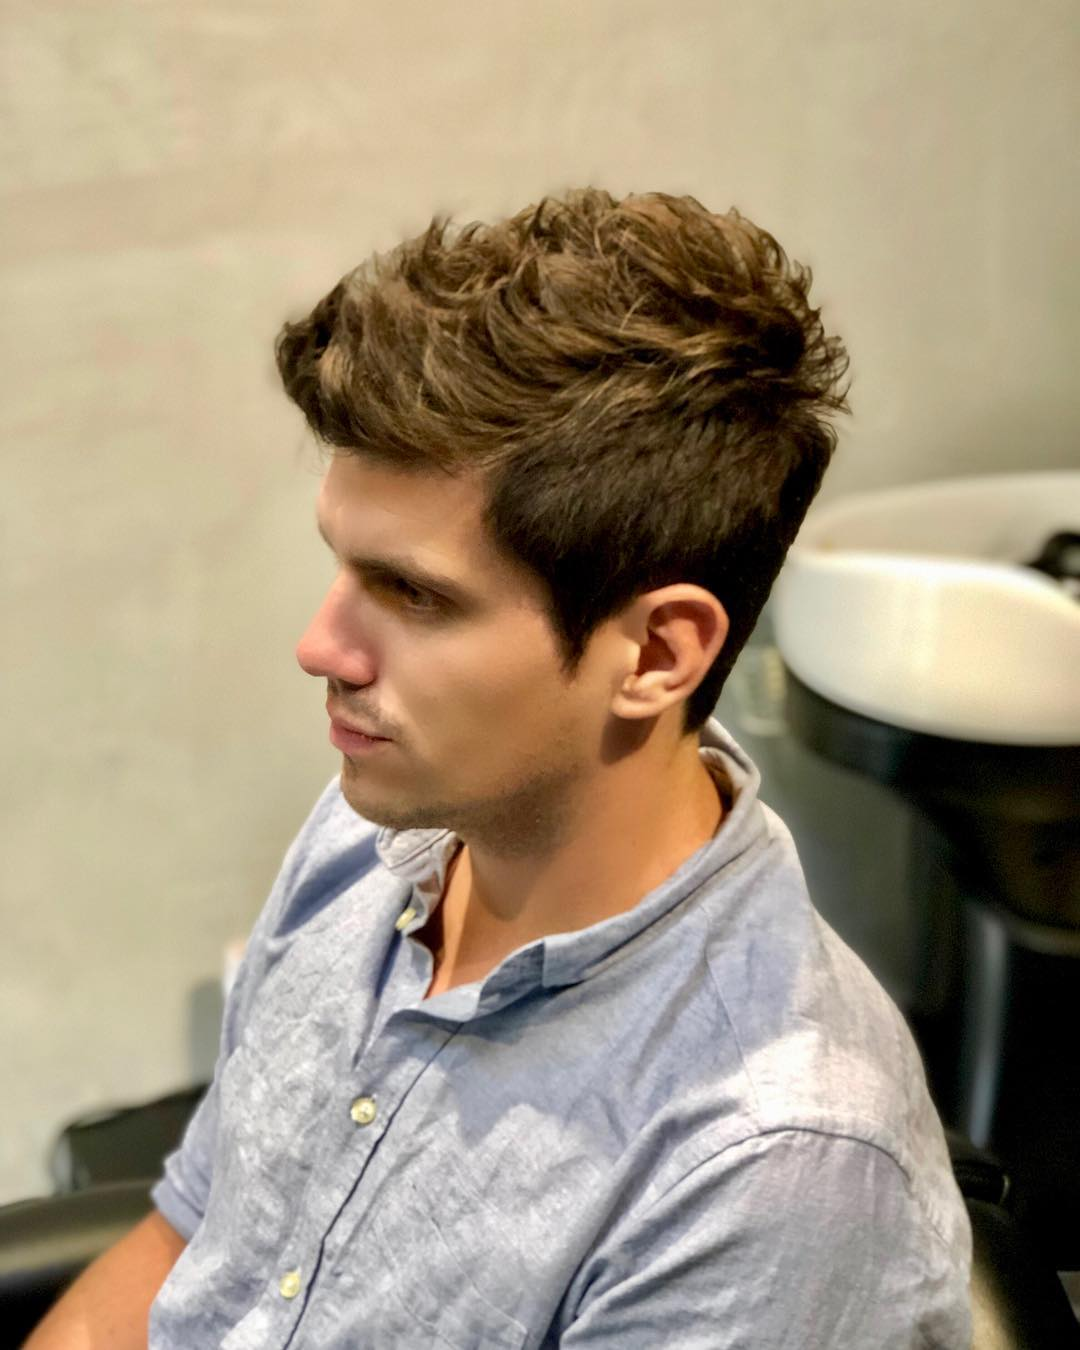 Low Maintenance Men's Haircut with Spikey Fringe at SAD Hair Design